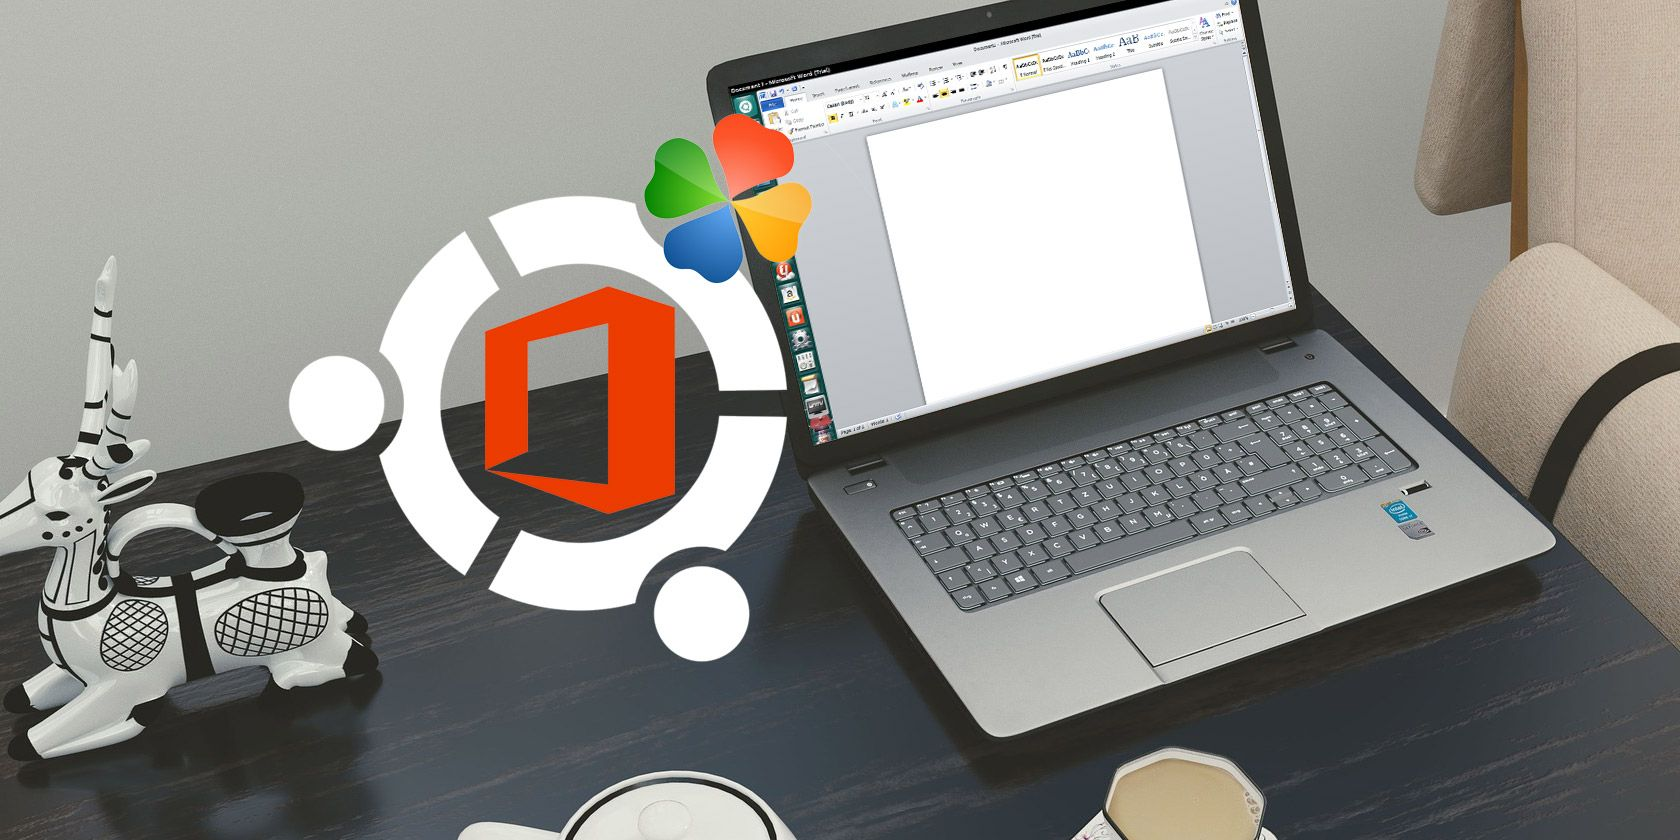 How to Install and Use Microsoft Office on Linux